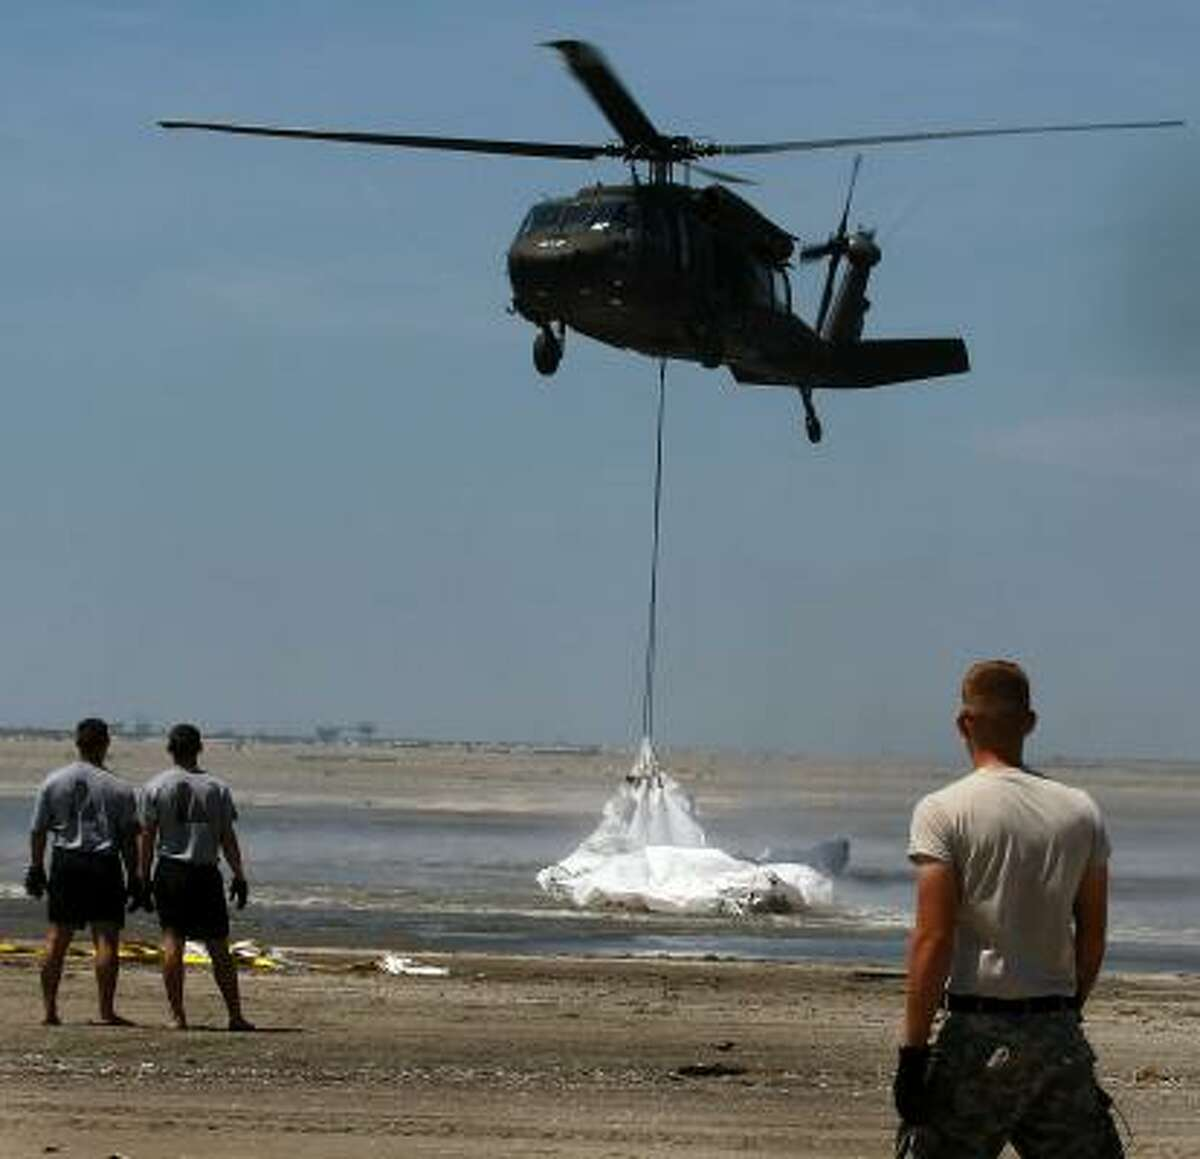 A Louisiana National Guard helicopter airlifts sling load sand bags into place as they create a barrier in an attempt to protect an estuary from the massive oil spill on May 10, 2010 in Lafourche Parish, La.